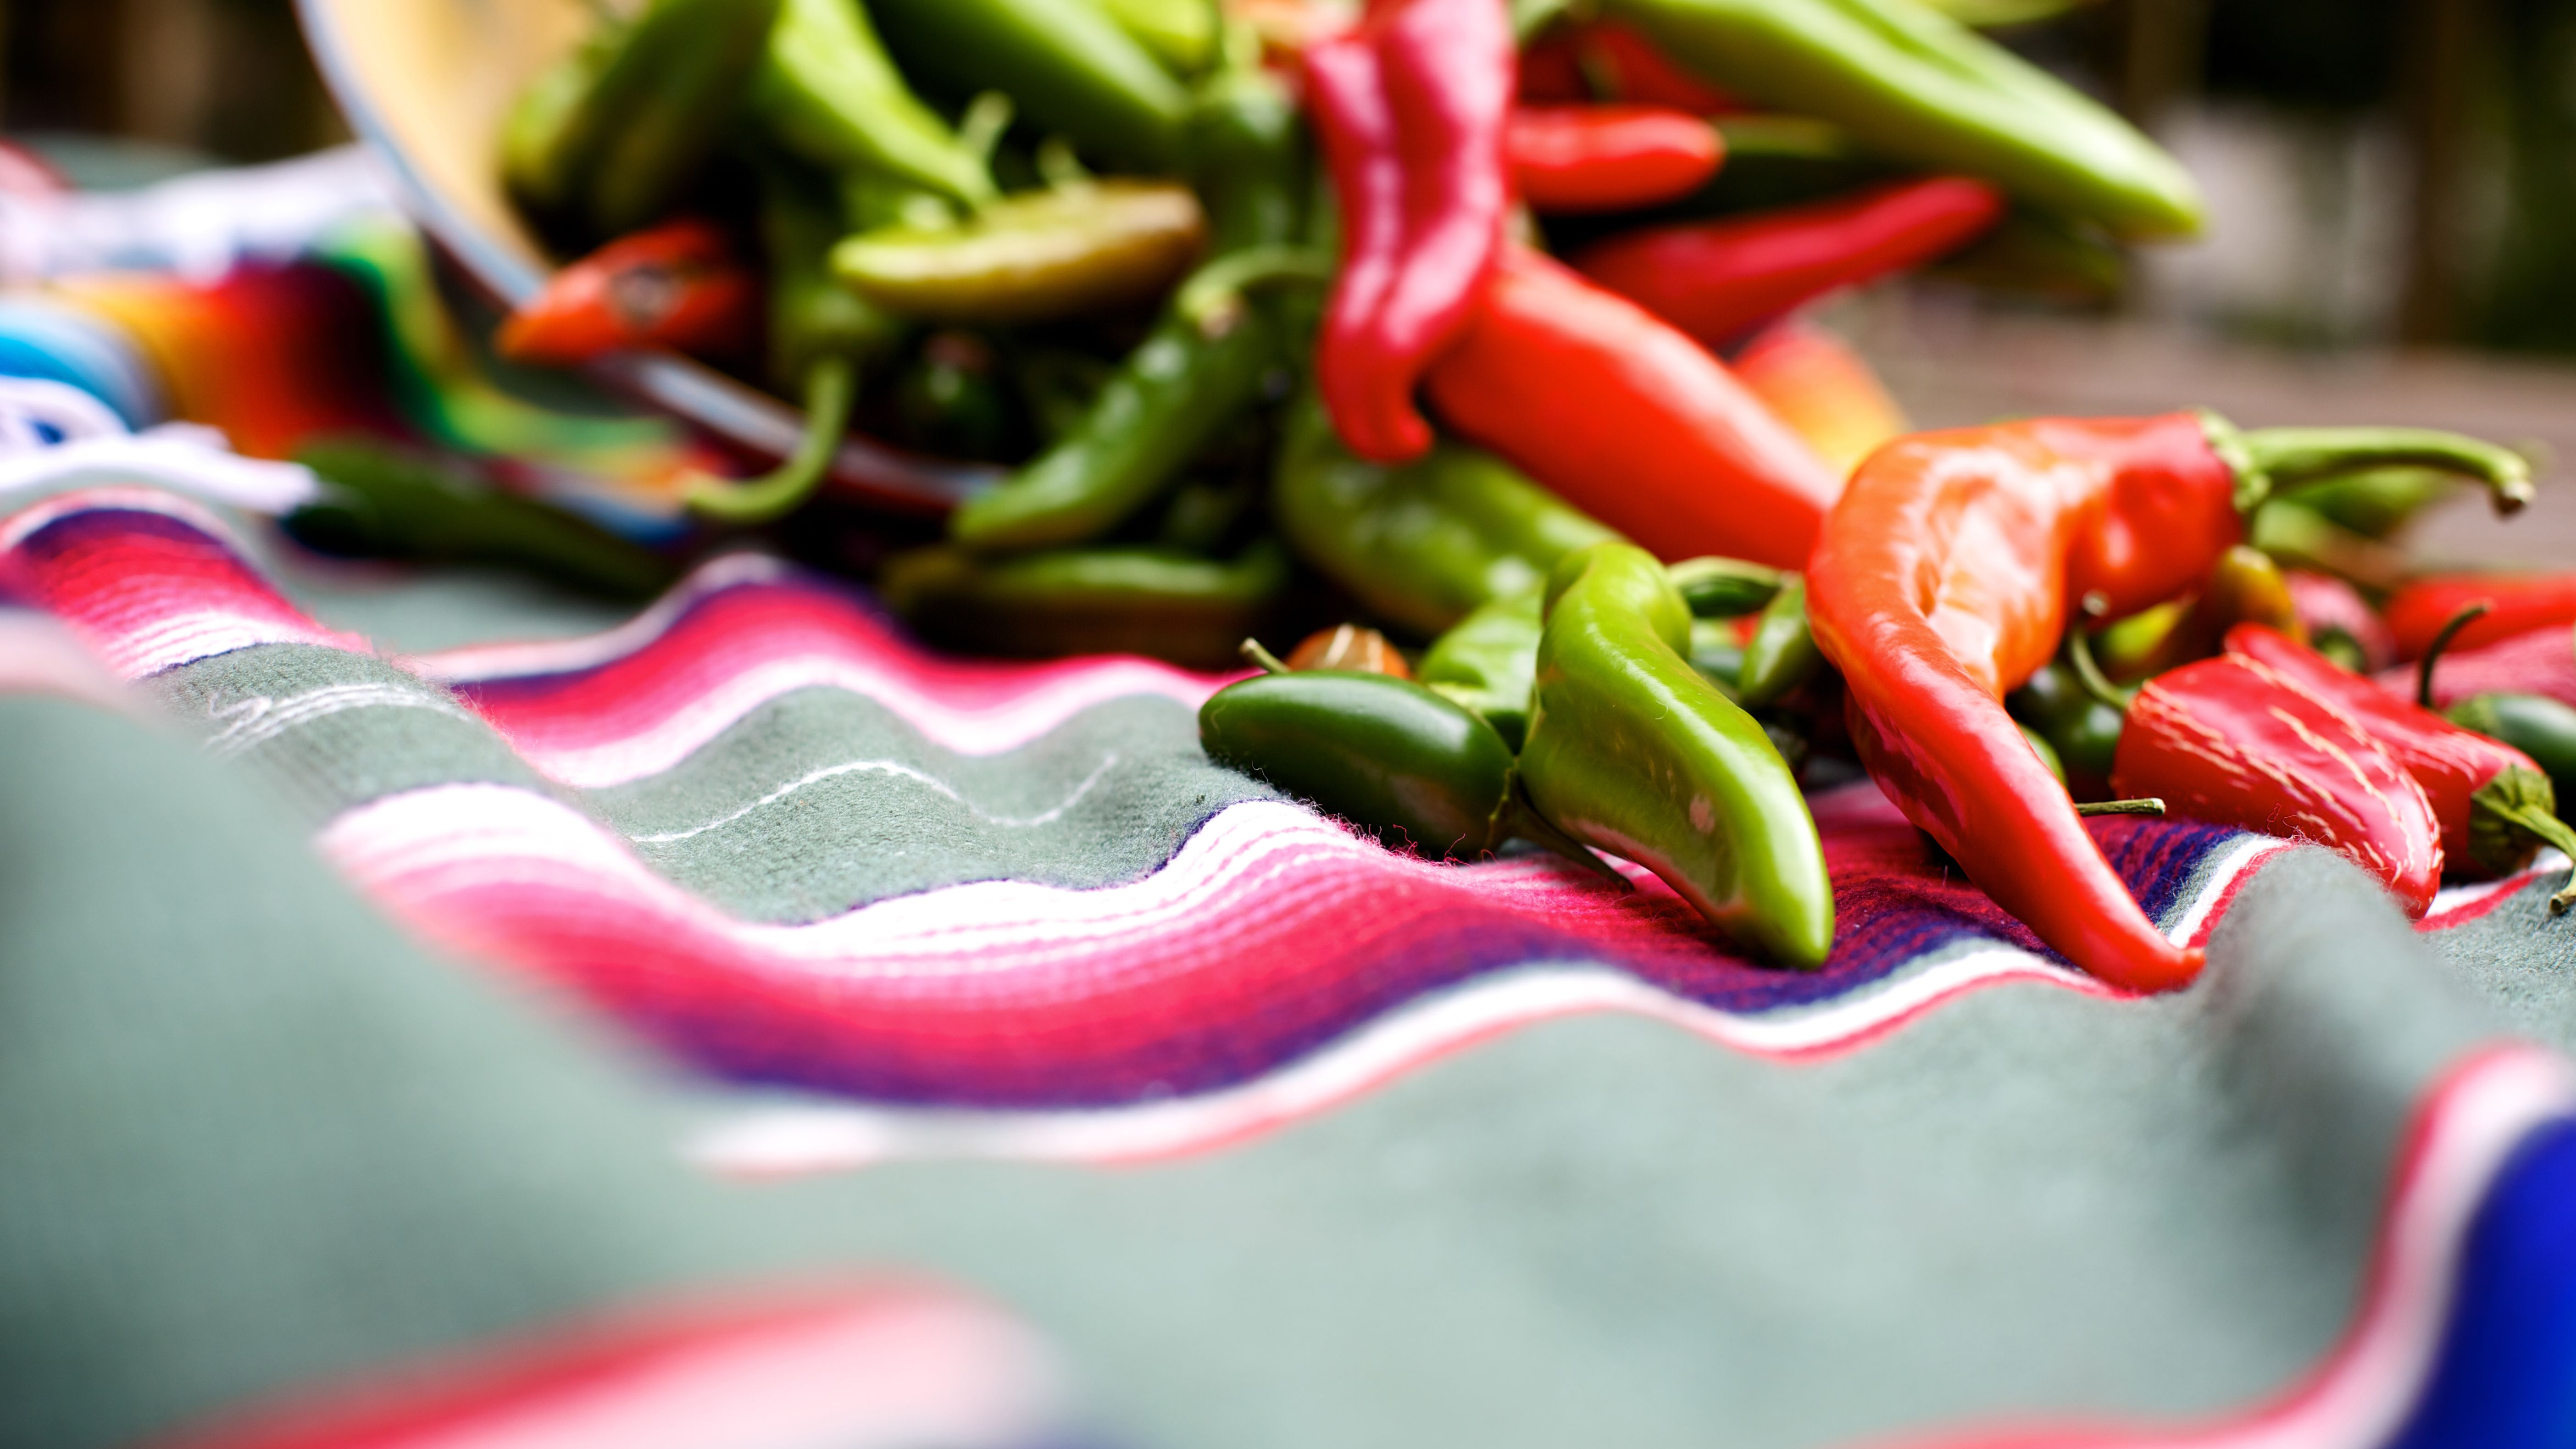 Guide to Different Types of Red Chiles